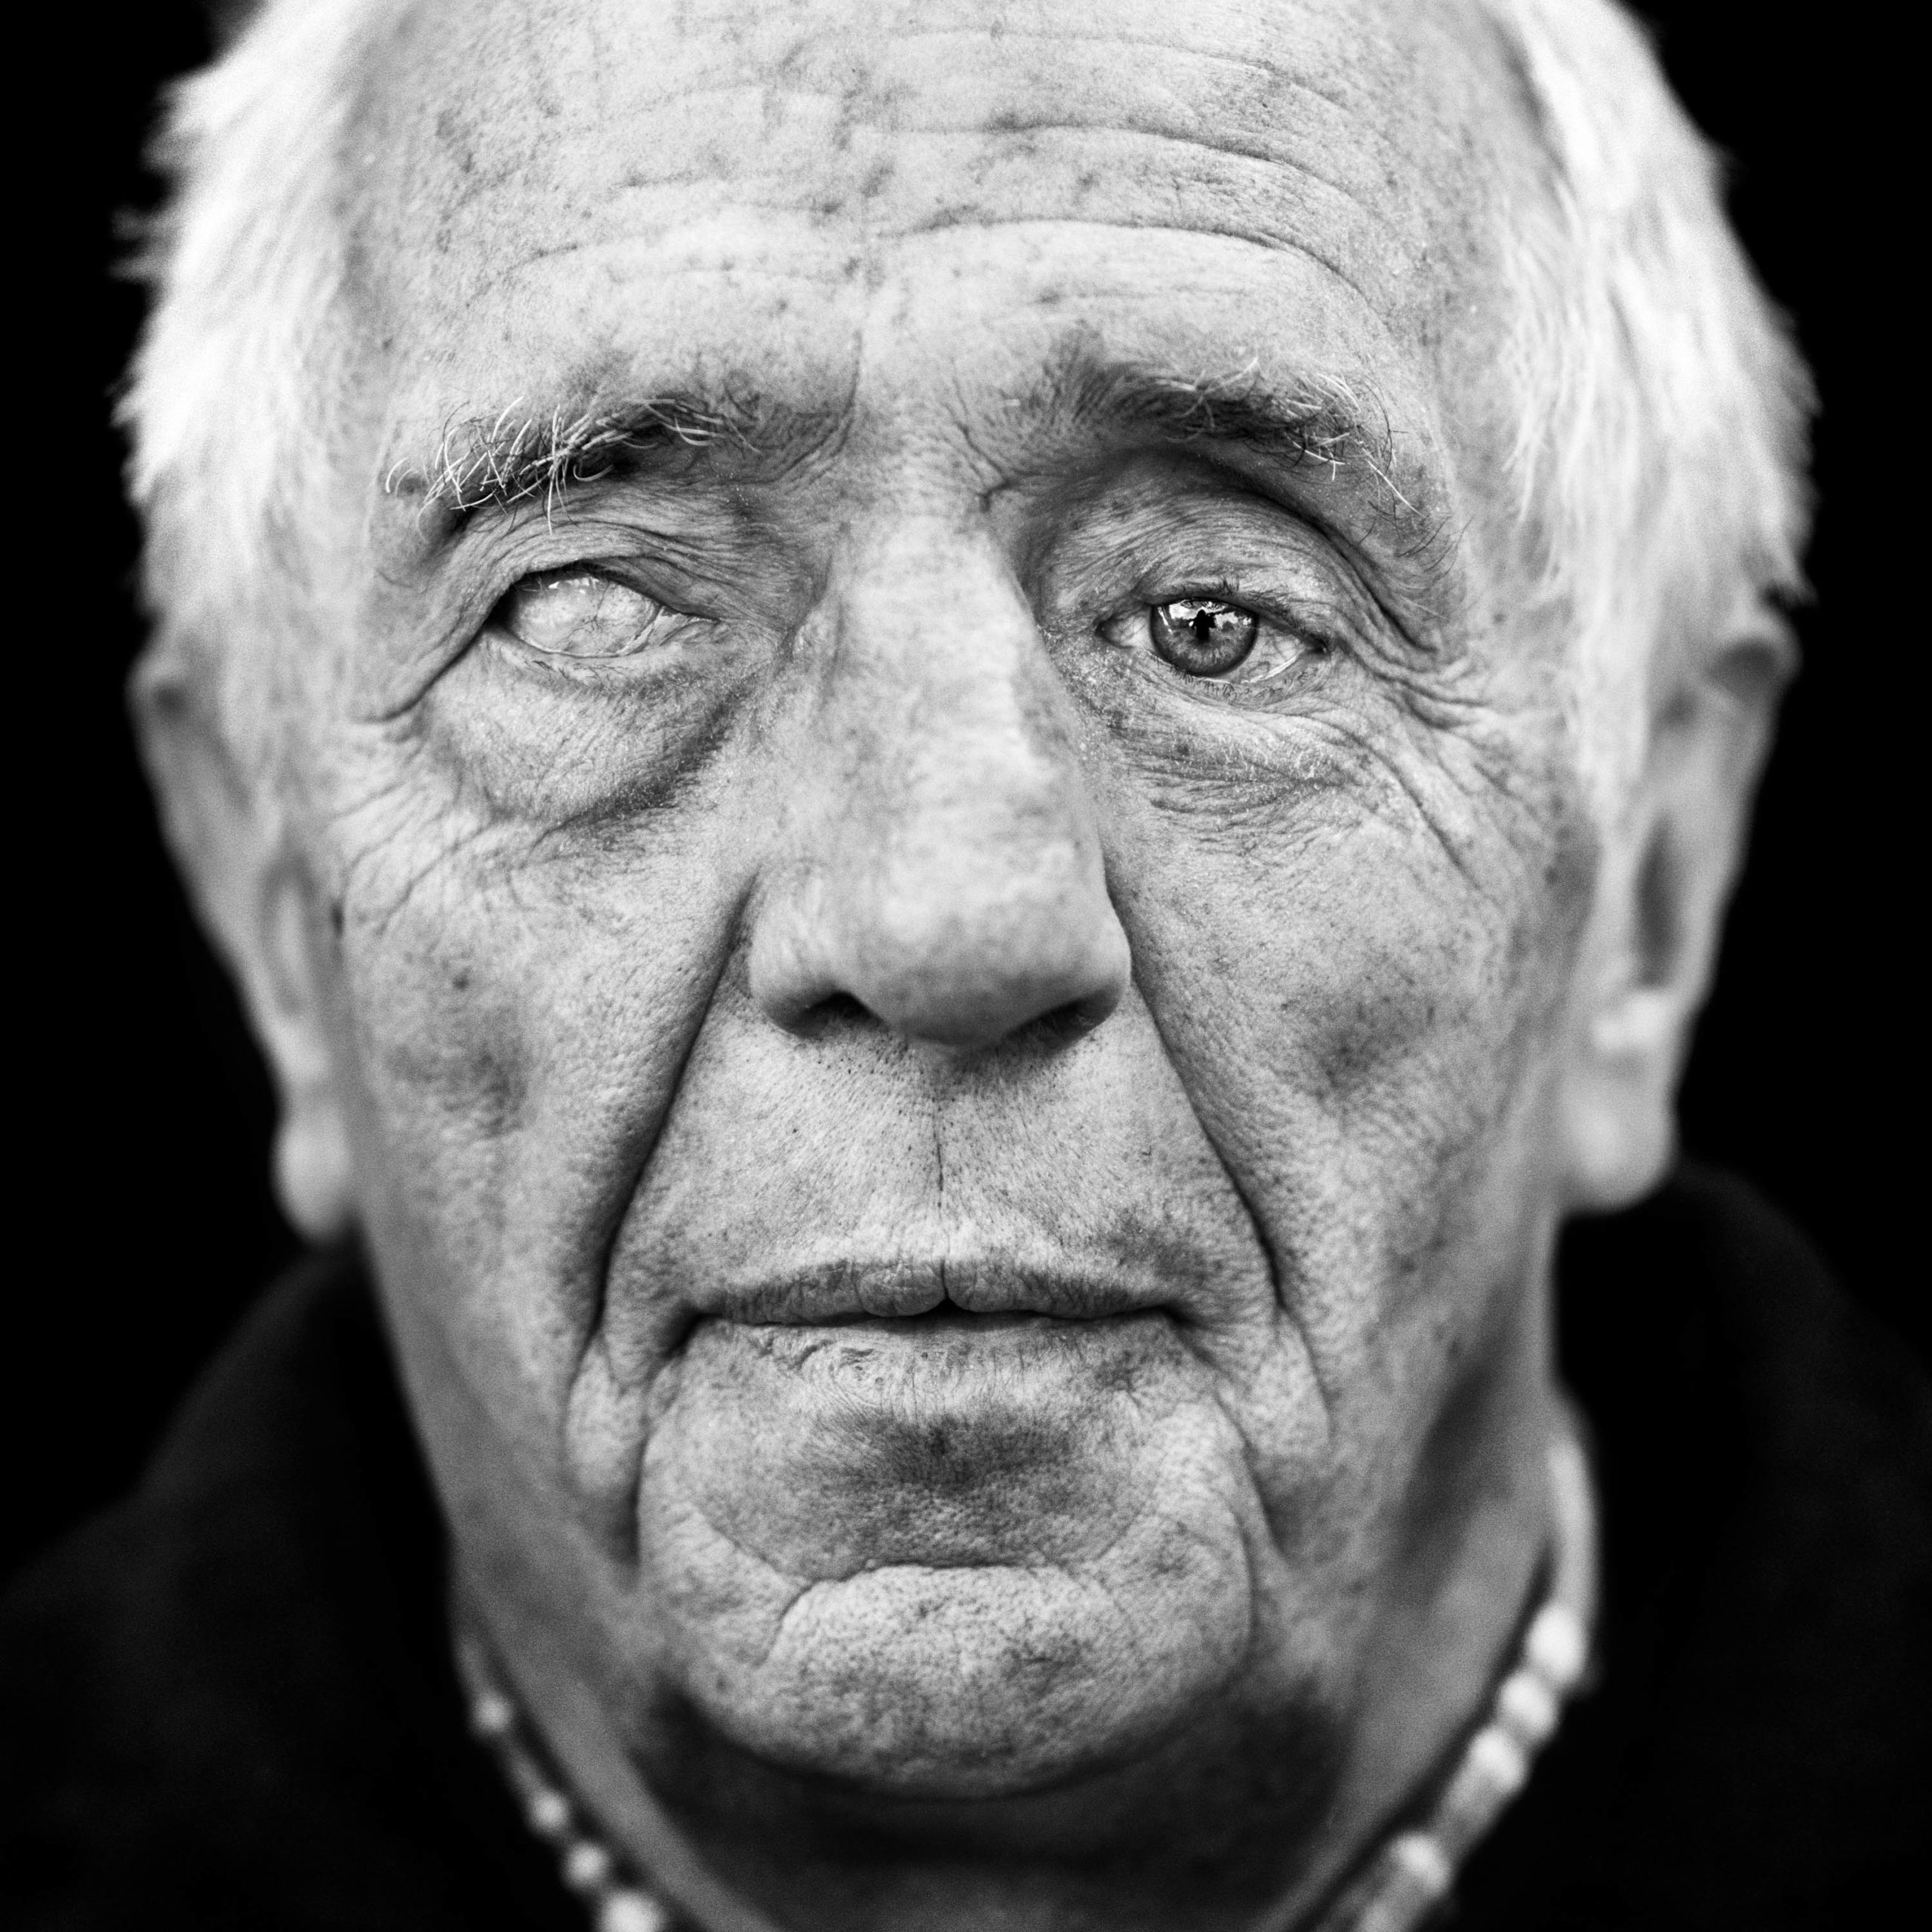 """Hartmut Mehls (Germany 1937). Interview outtake: """"On one of the quieter days, I went outside and suddenly a grenade exploded. Both my eyes were injured."""""""